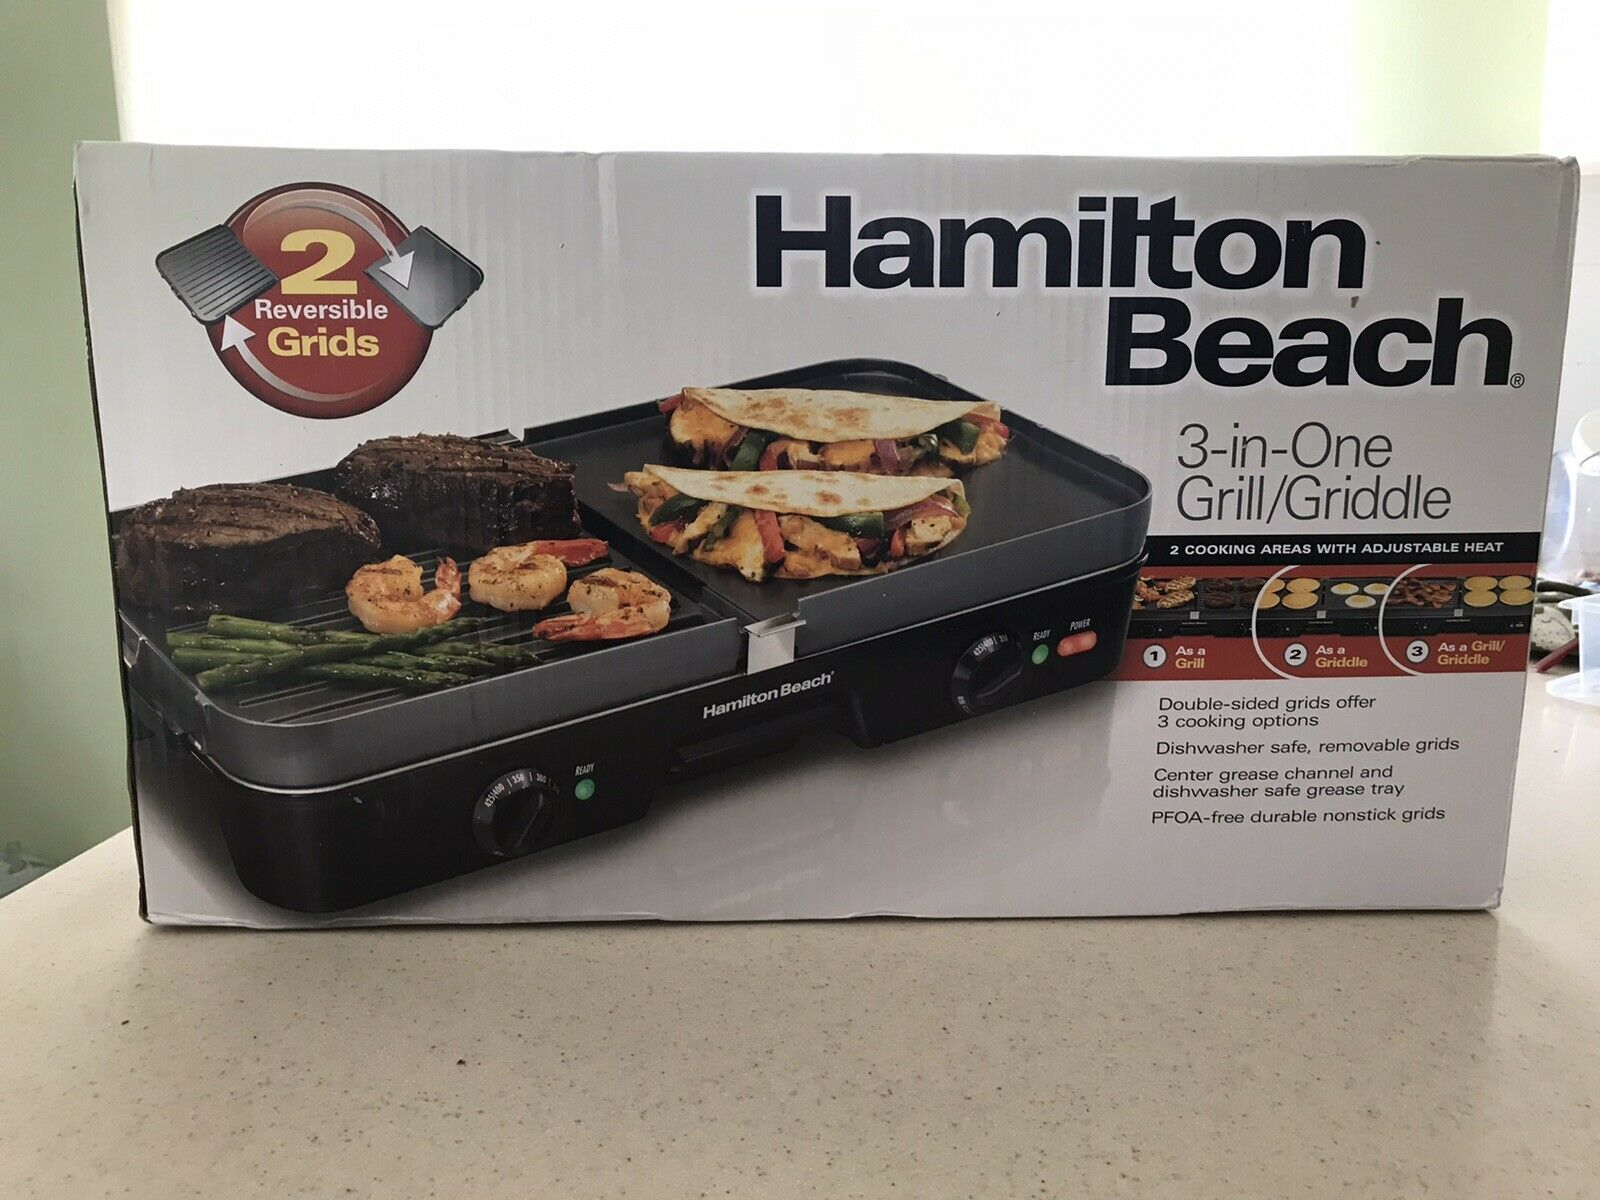 Hamilton Beach 3 in 1 Grill/Griddle Model 38546 New in unope